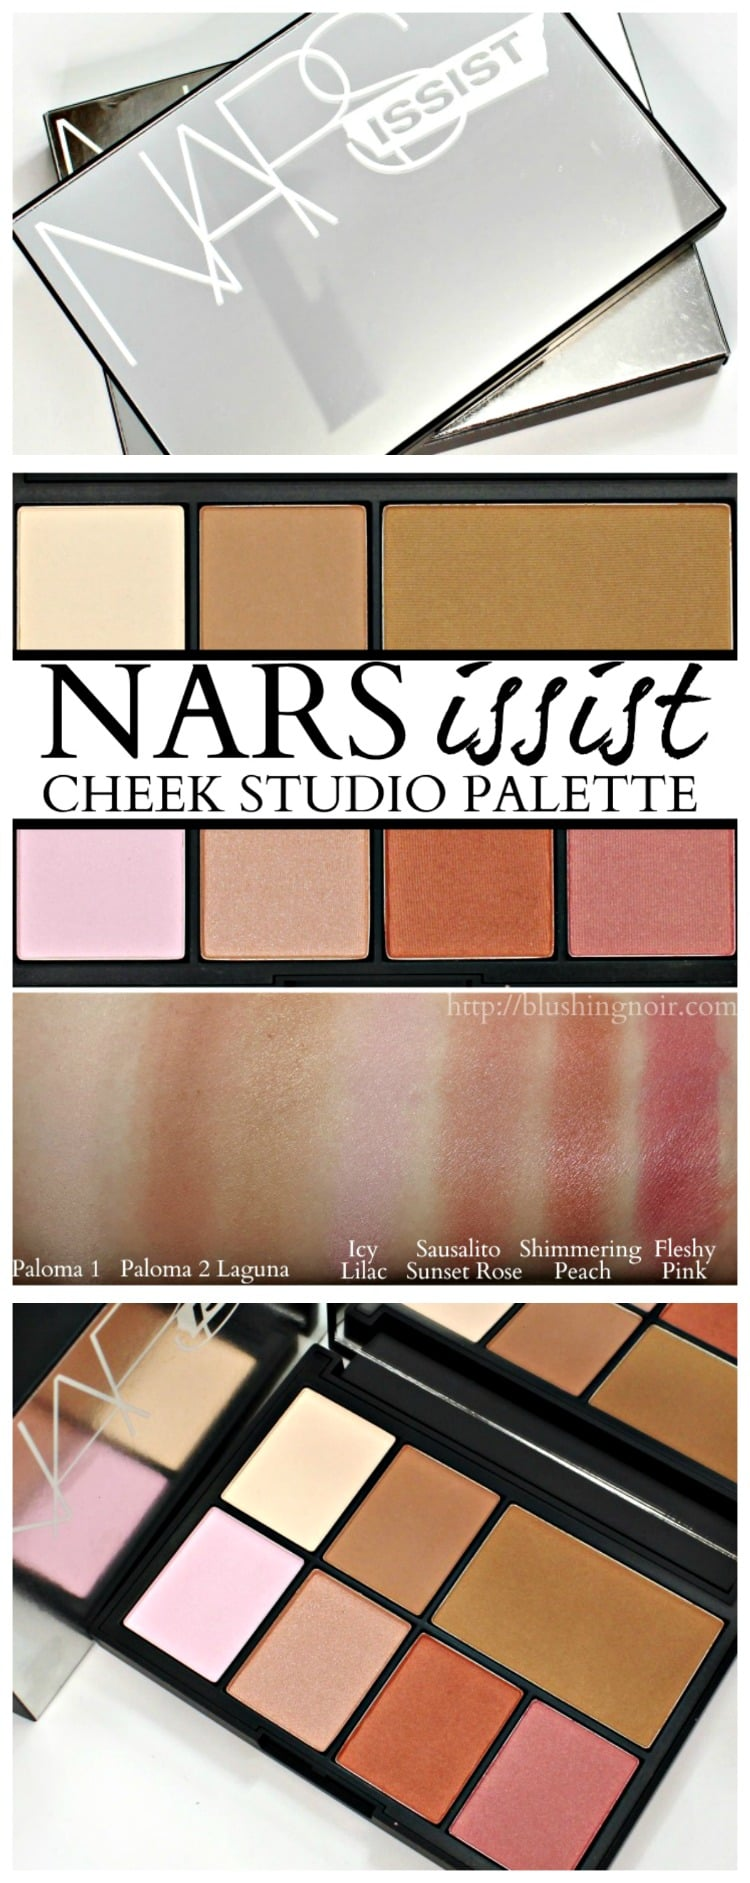 NARSISSIST Cheek Studio Palette NARS swatches review photos